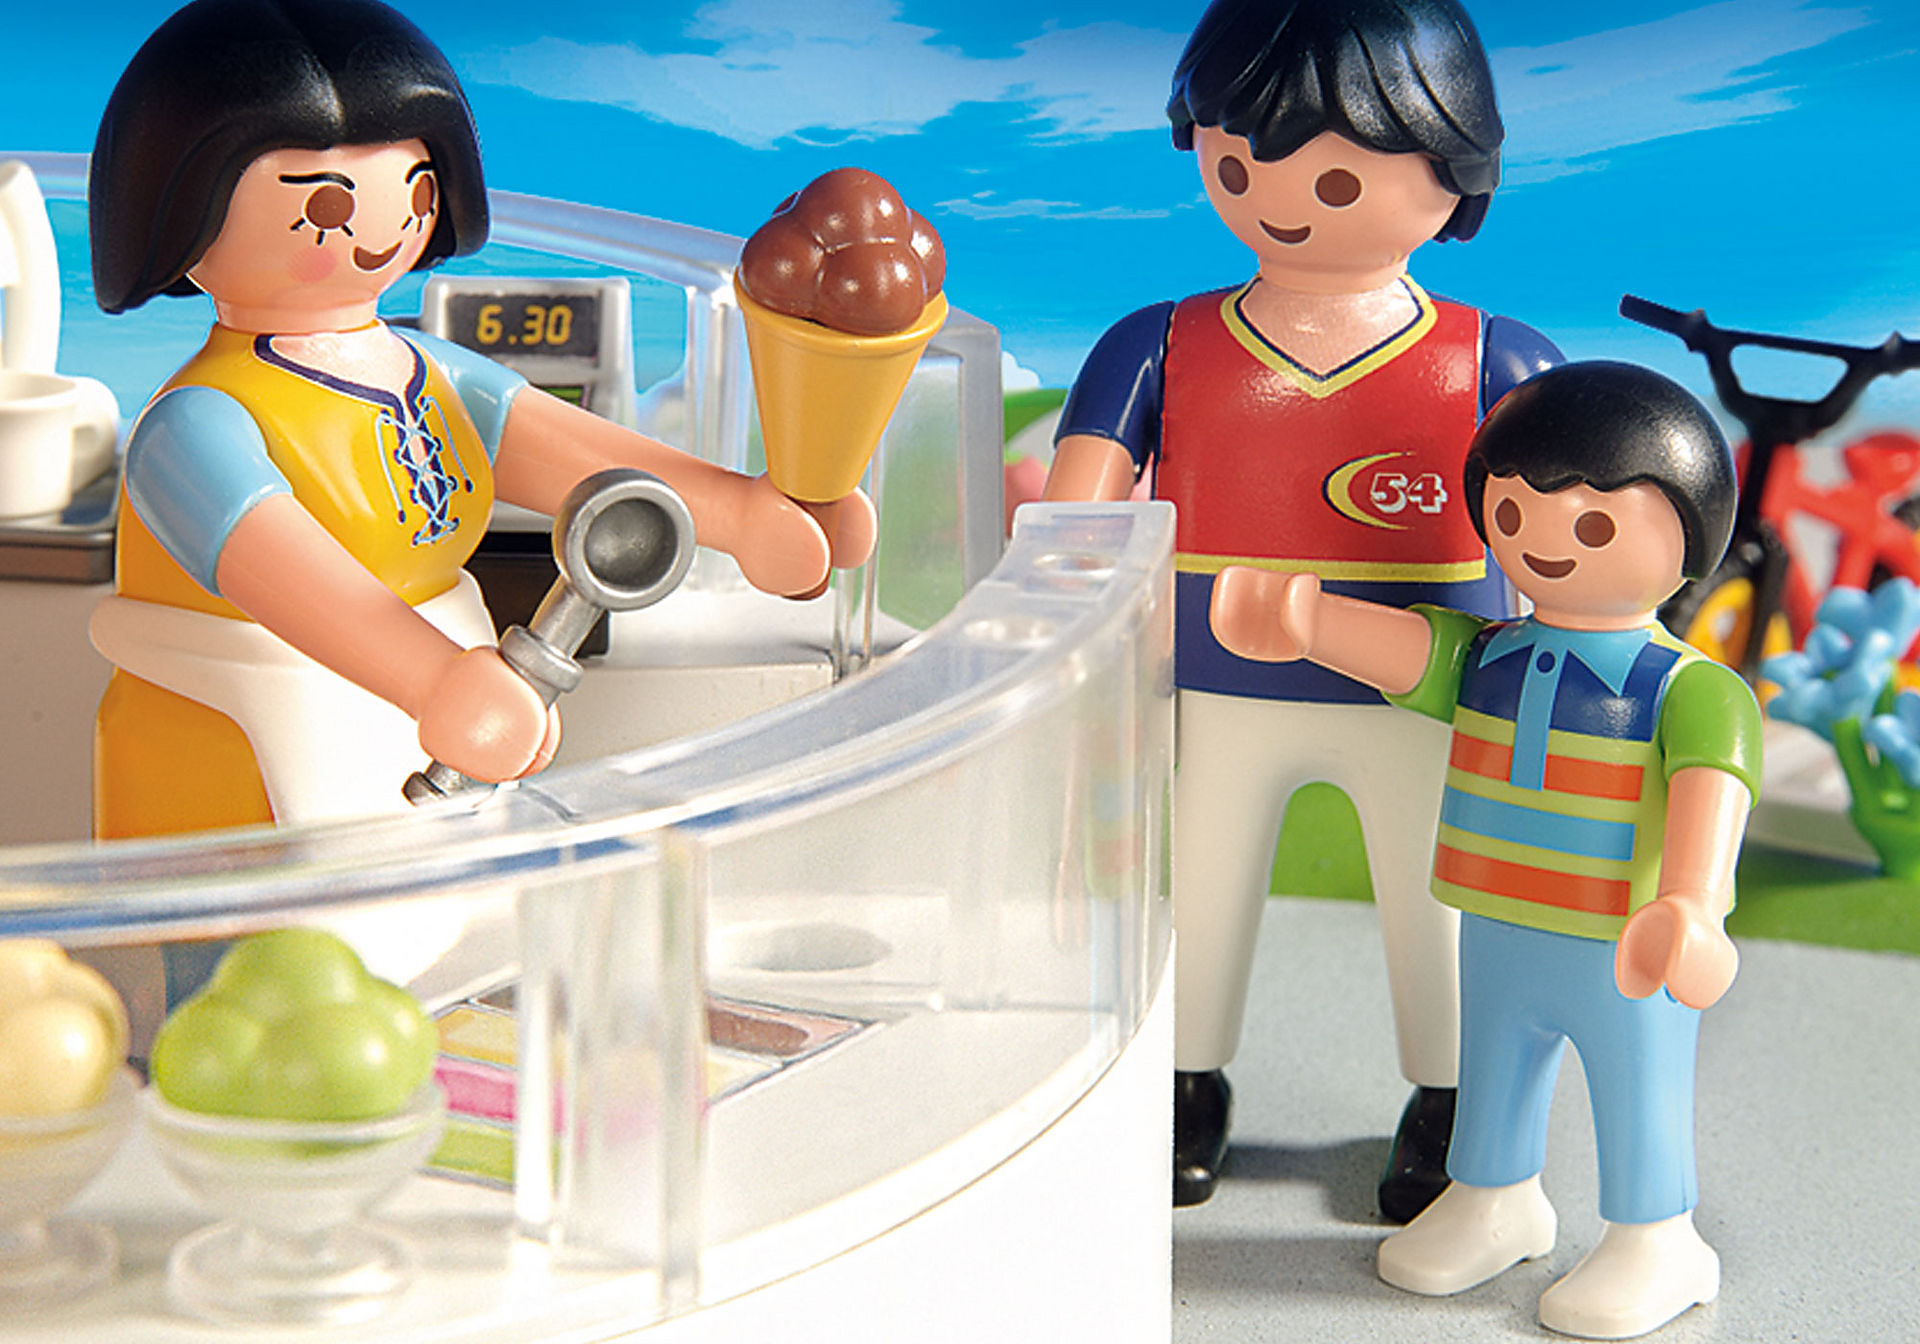 http://media.playmobil.com/i/playmobil/4134_product_extra4/Superset Marchand de glaces